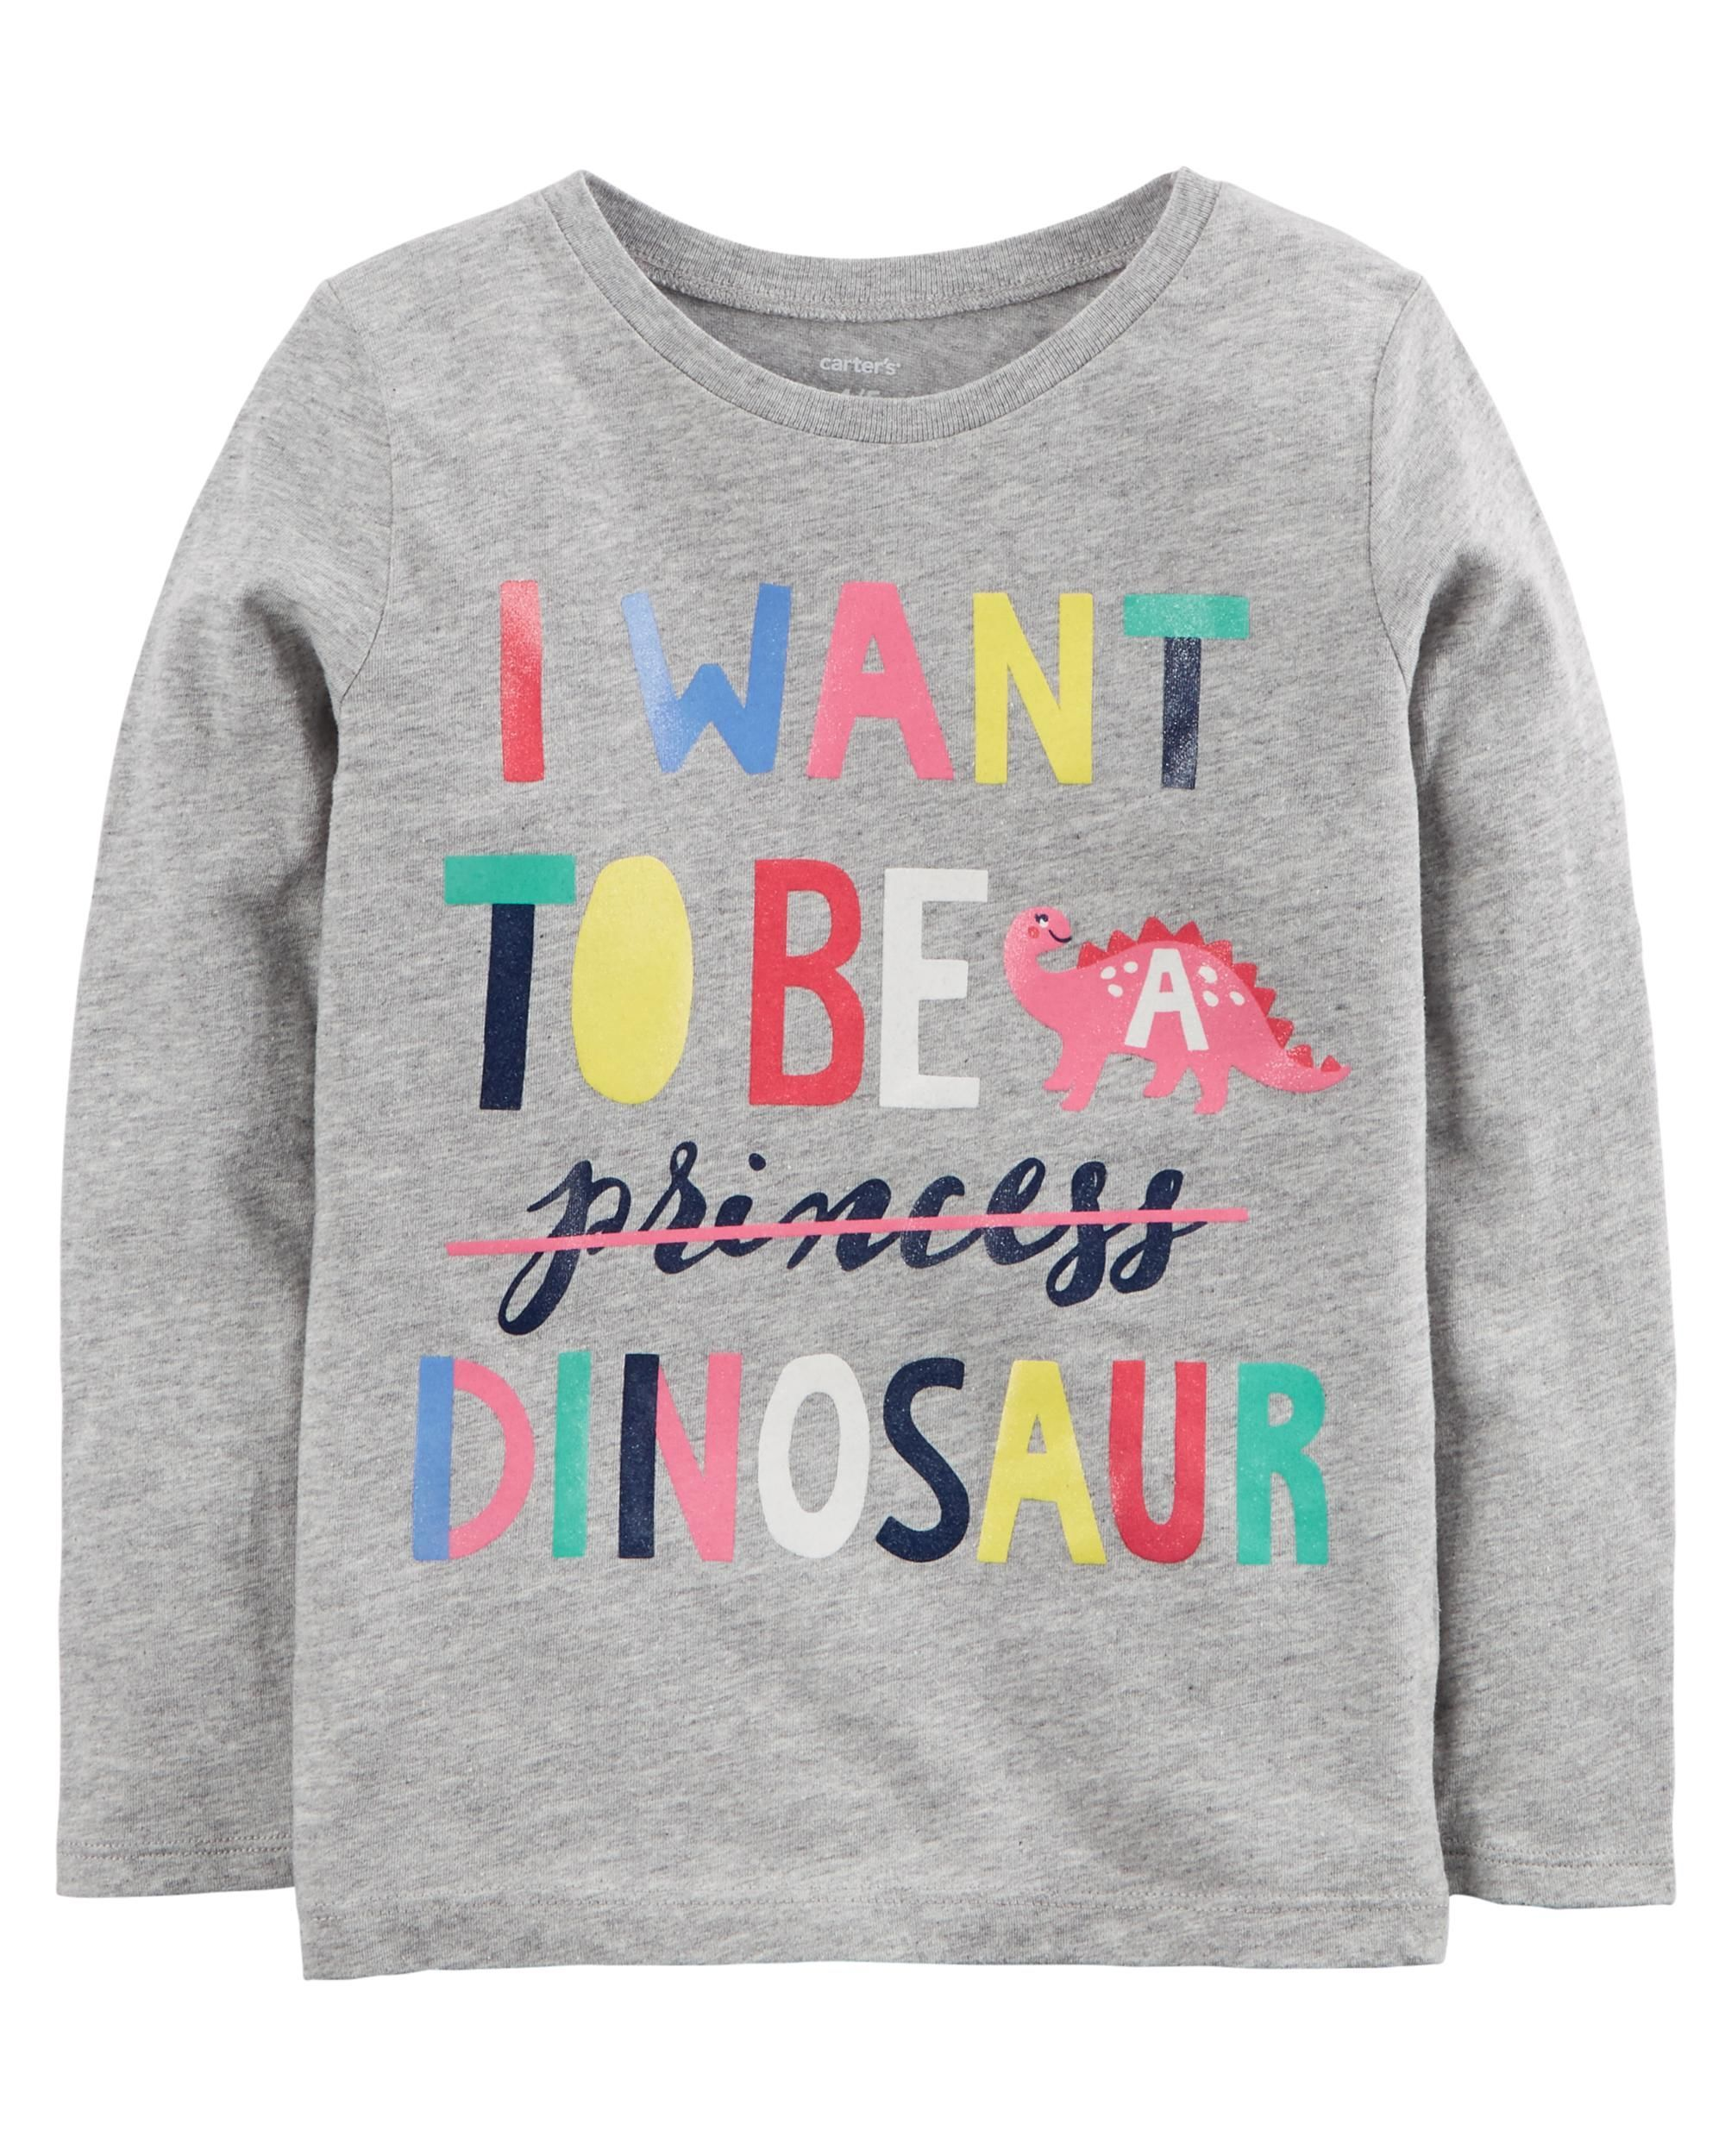 Dinosaur Jersey Tee Carters Baby Clothes Carters Baby